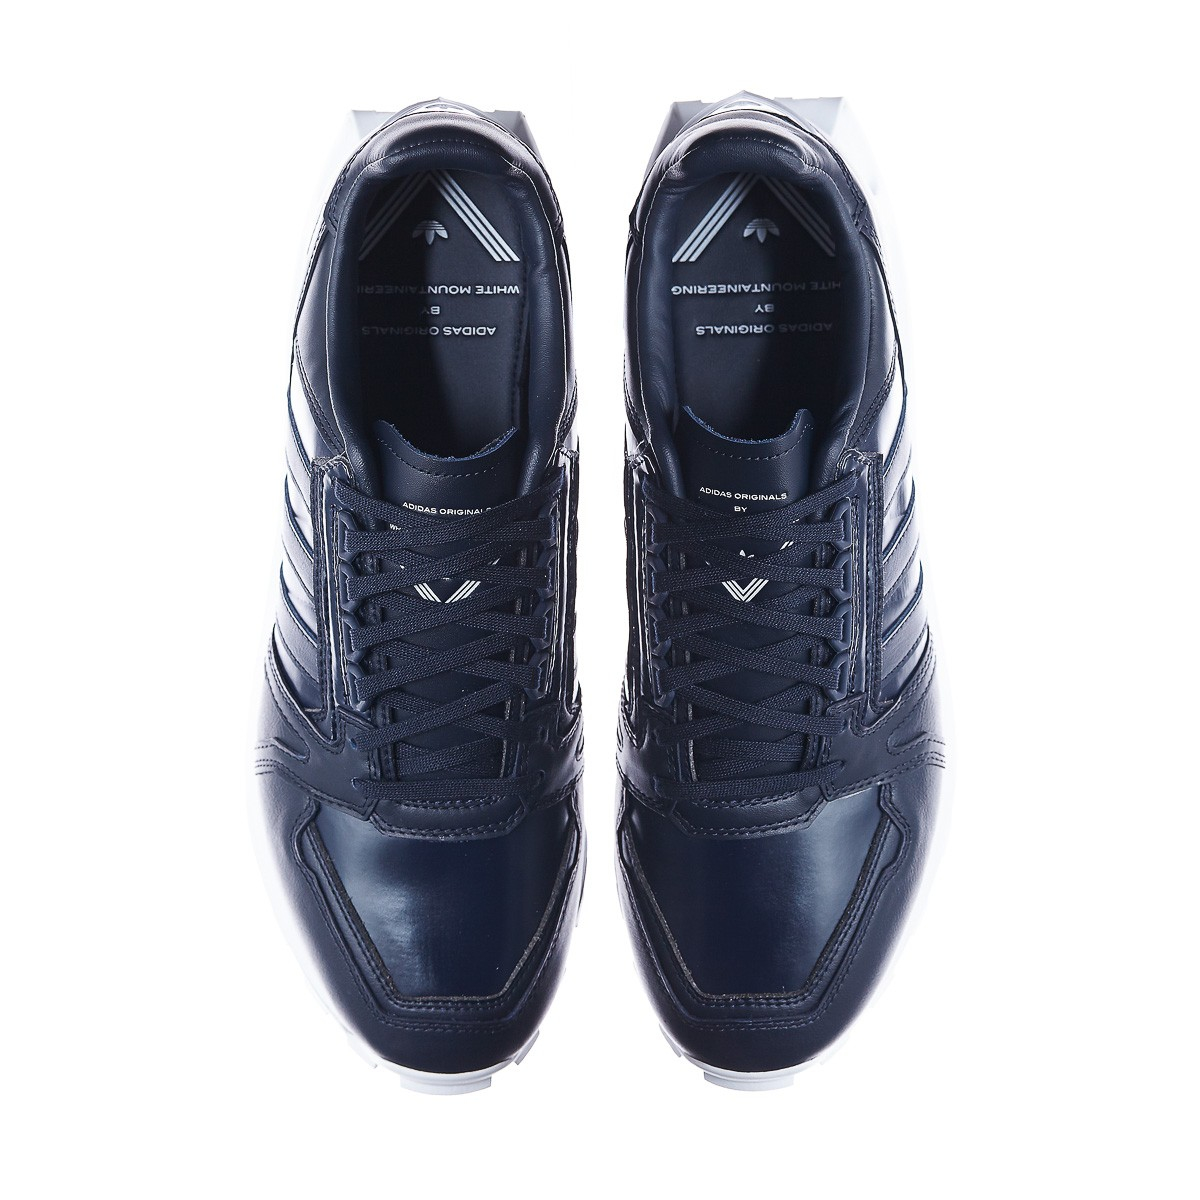 0e23ae54ee49 Lyst - adidas Originals White Mountaineering Formel 1 Sneakers in ...